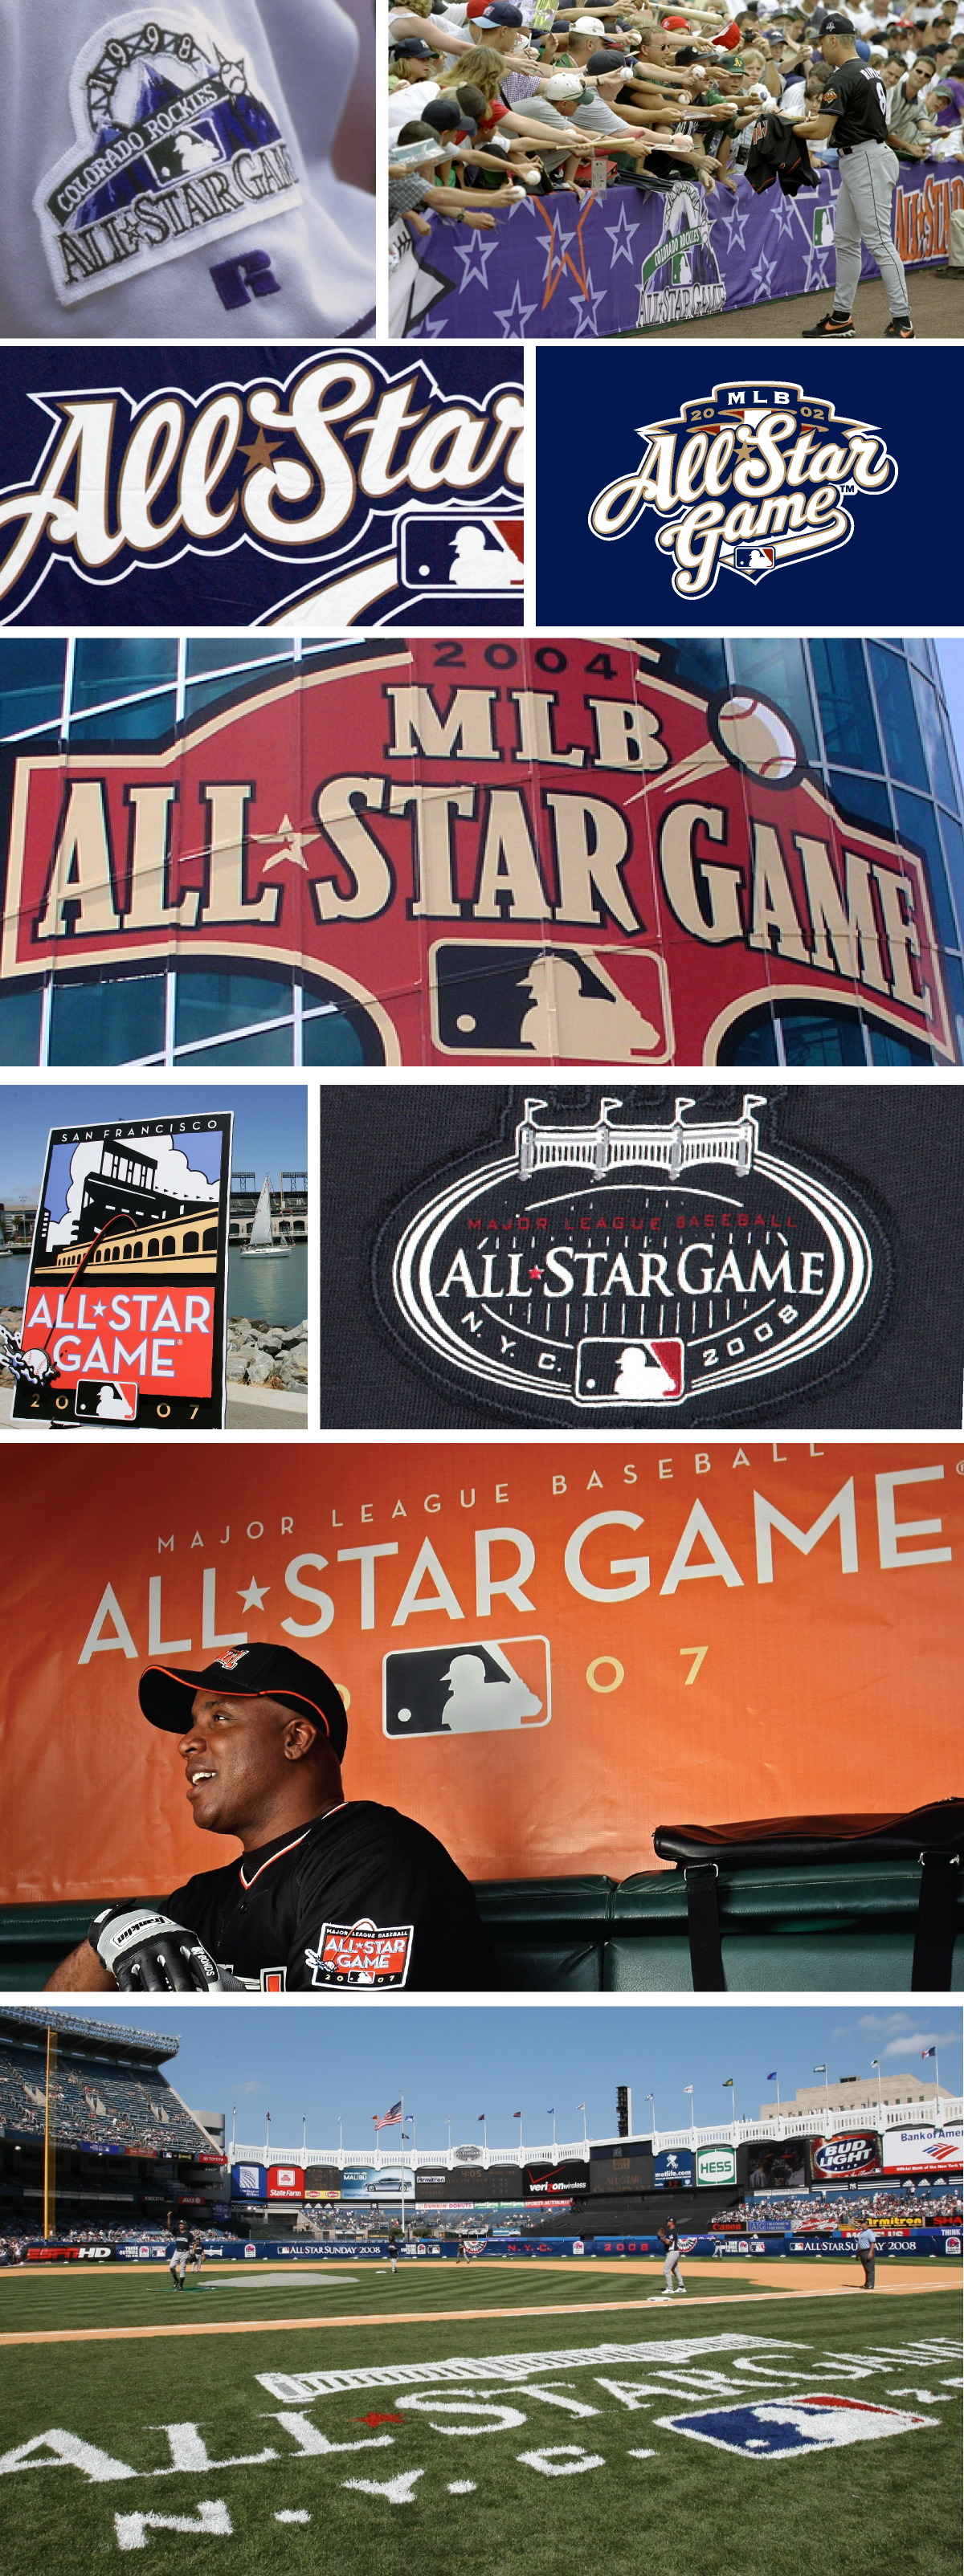 MLB_All-StarGame_Identities_1998-2007.png